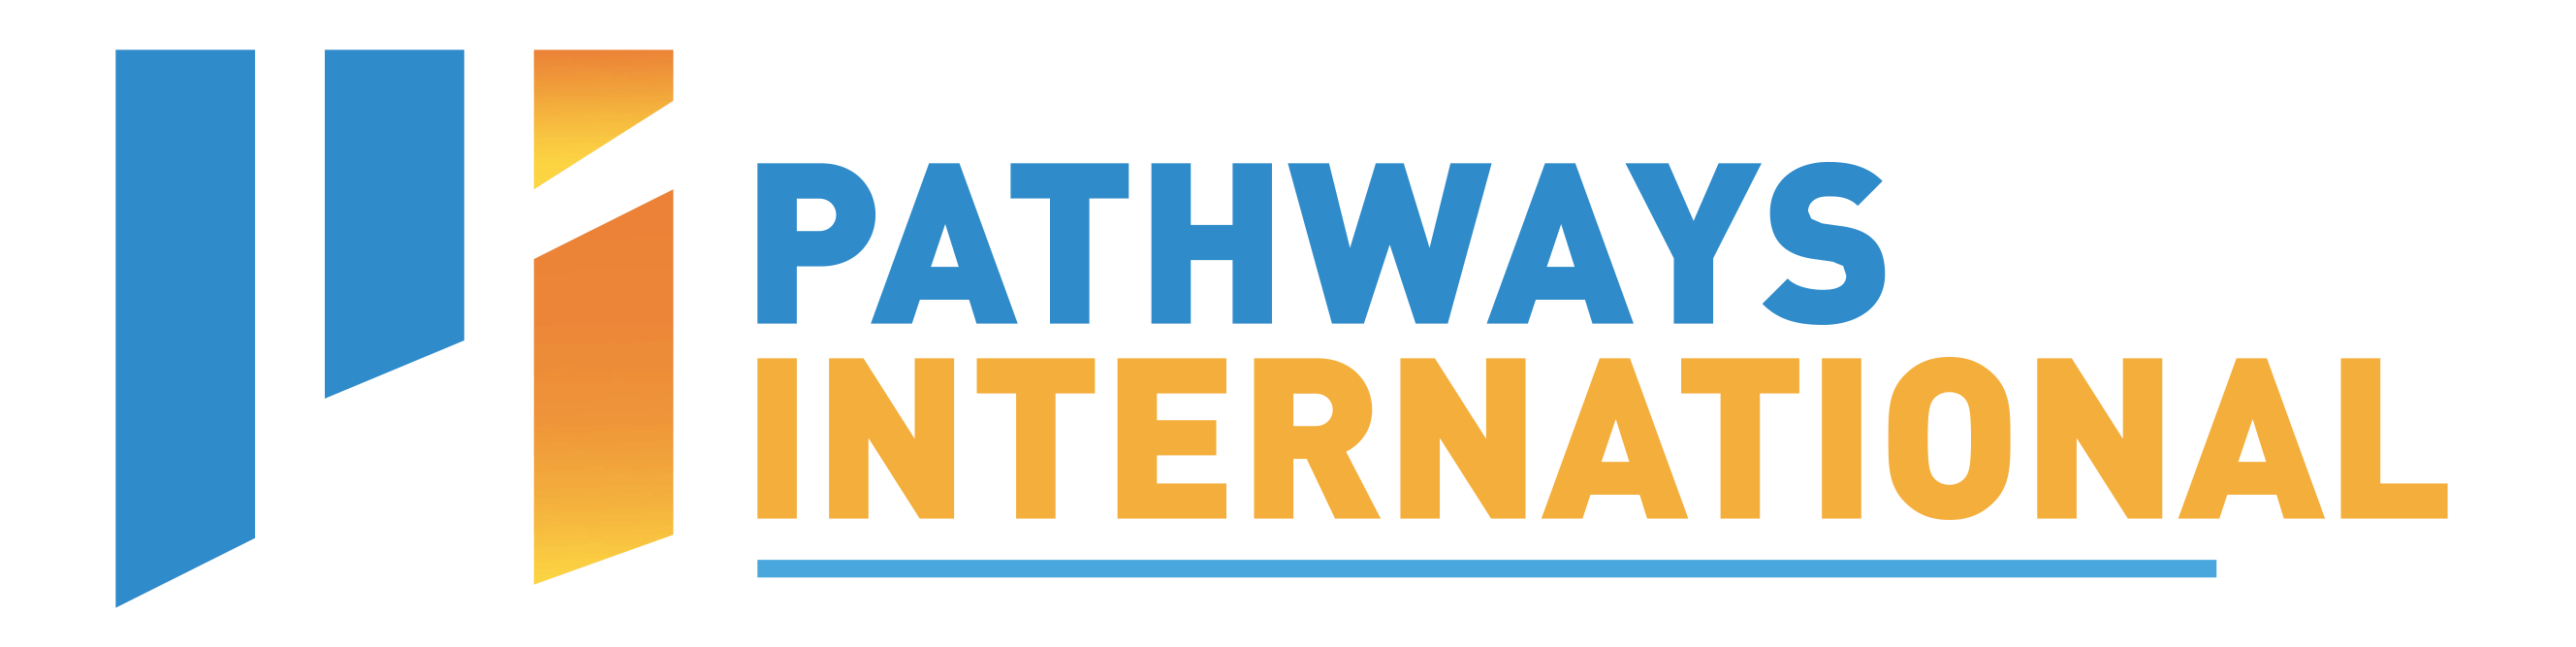 Pathways International